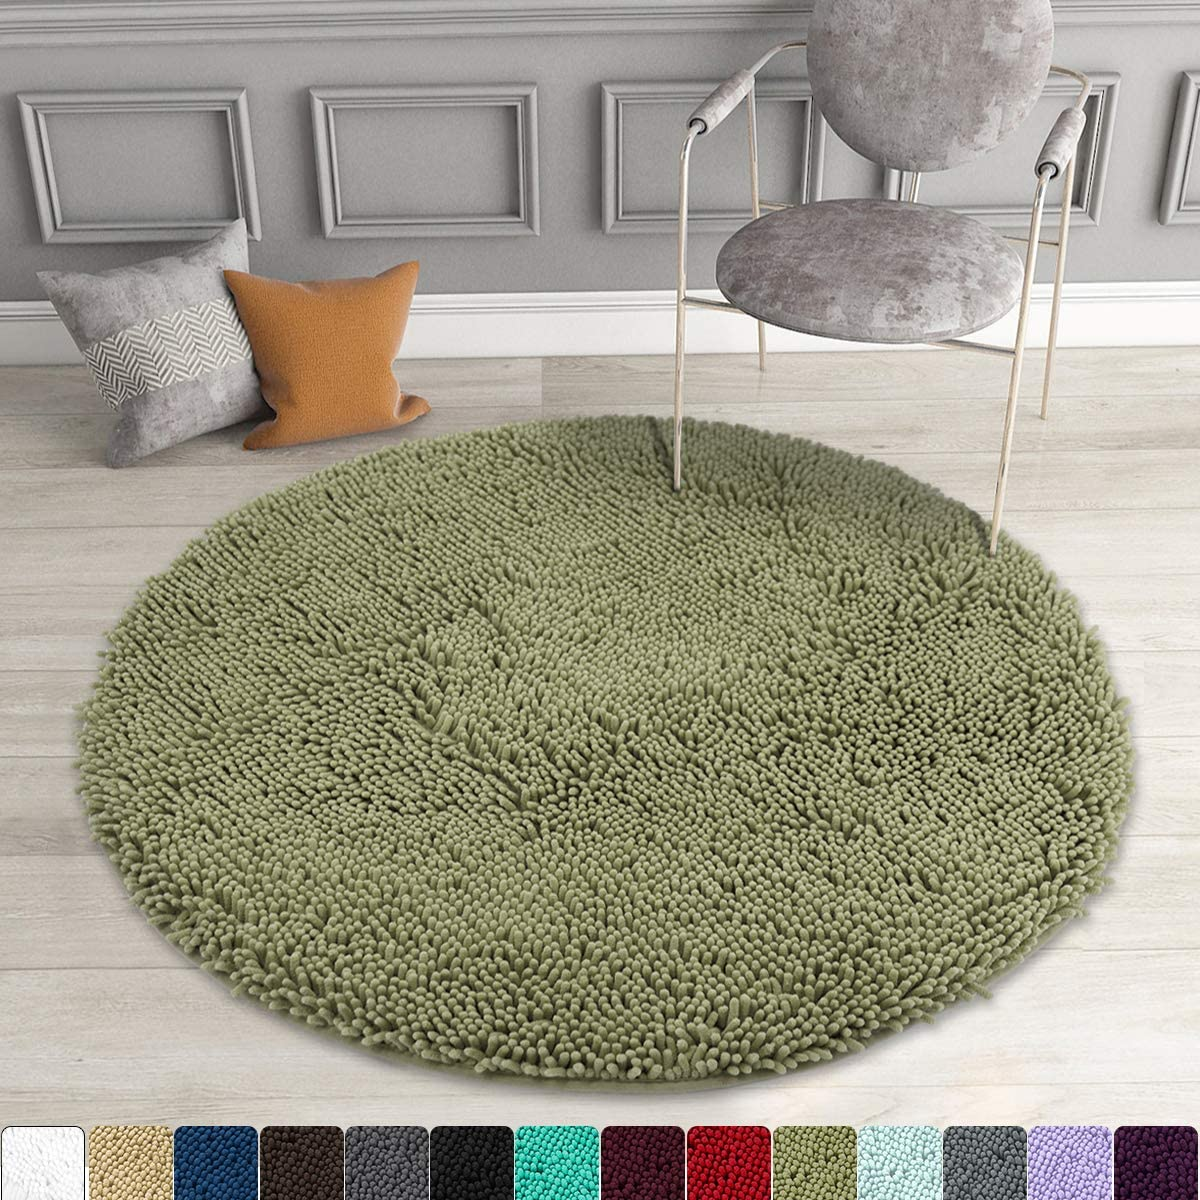 MAYSHINE Round Bath Mat Non-Slip Chenille 3 Feet Shaggy Bathroom Rugs Extra Soft and Absorbent Perfect Plush Carpet for Living Room Bedroom, Machine Wash/Dry-Sage Green